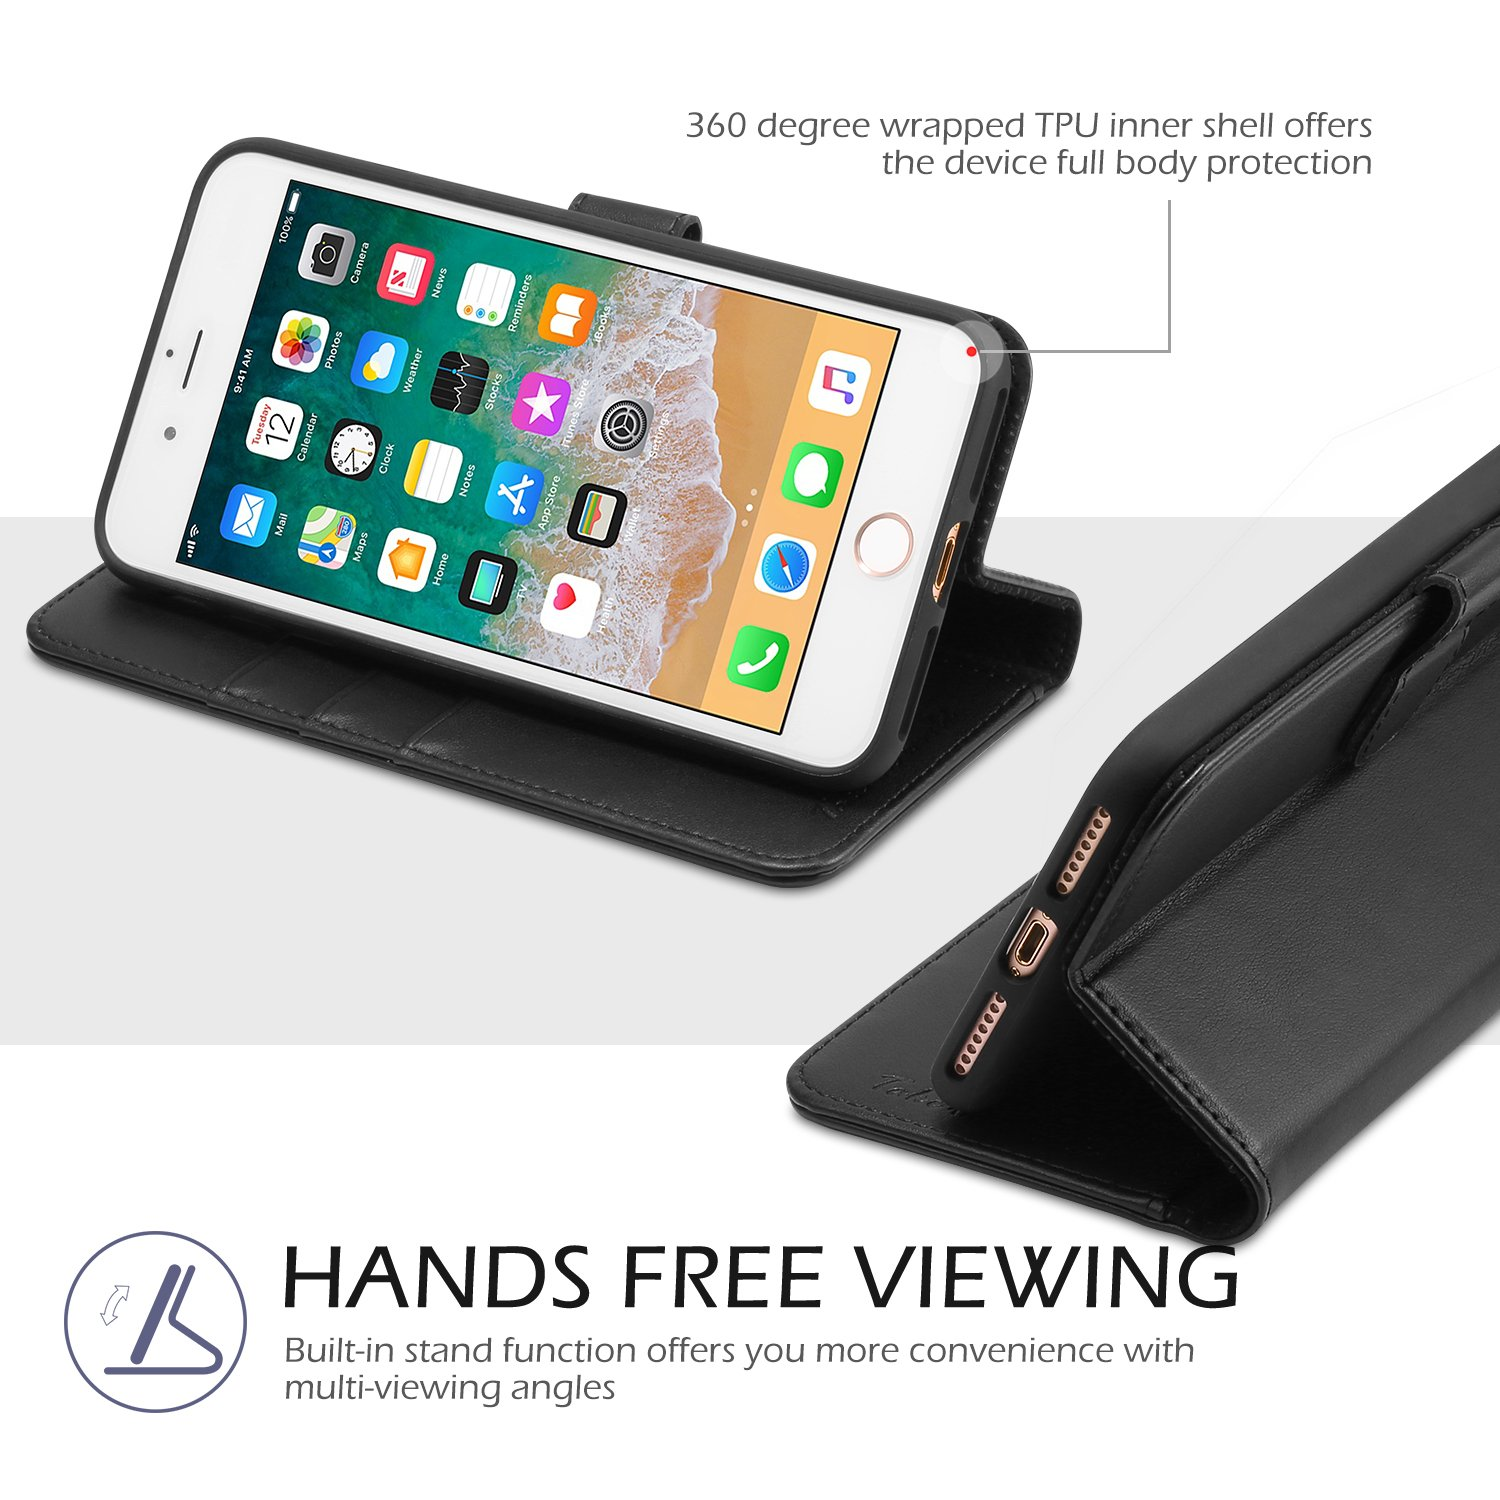 iPhone 8 Plus Wallet Case, iPhone 7 Plus Case, TUCCH Premium PU Leather Flip Folio Case with Card Slot, Cash Clip, Stand Holder and Magnetic Closure [TPU Shockproof Interior Protective Case], Black by TUCCH (Image #6)